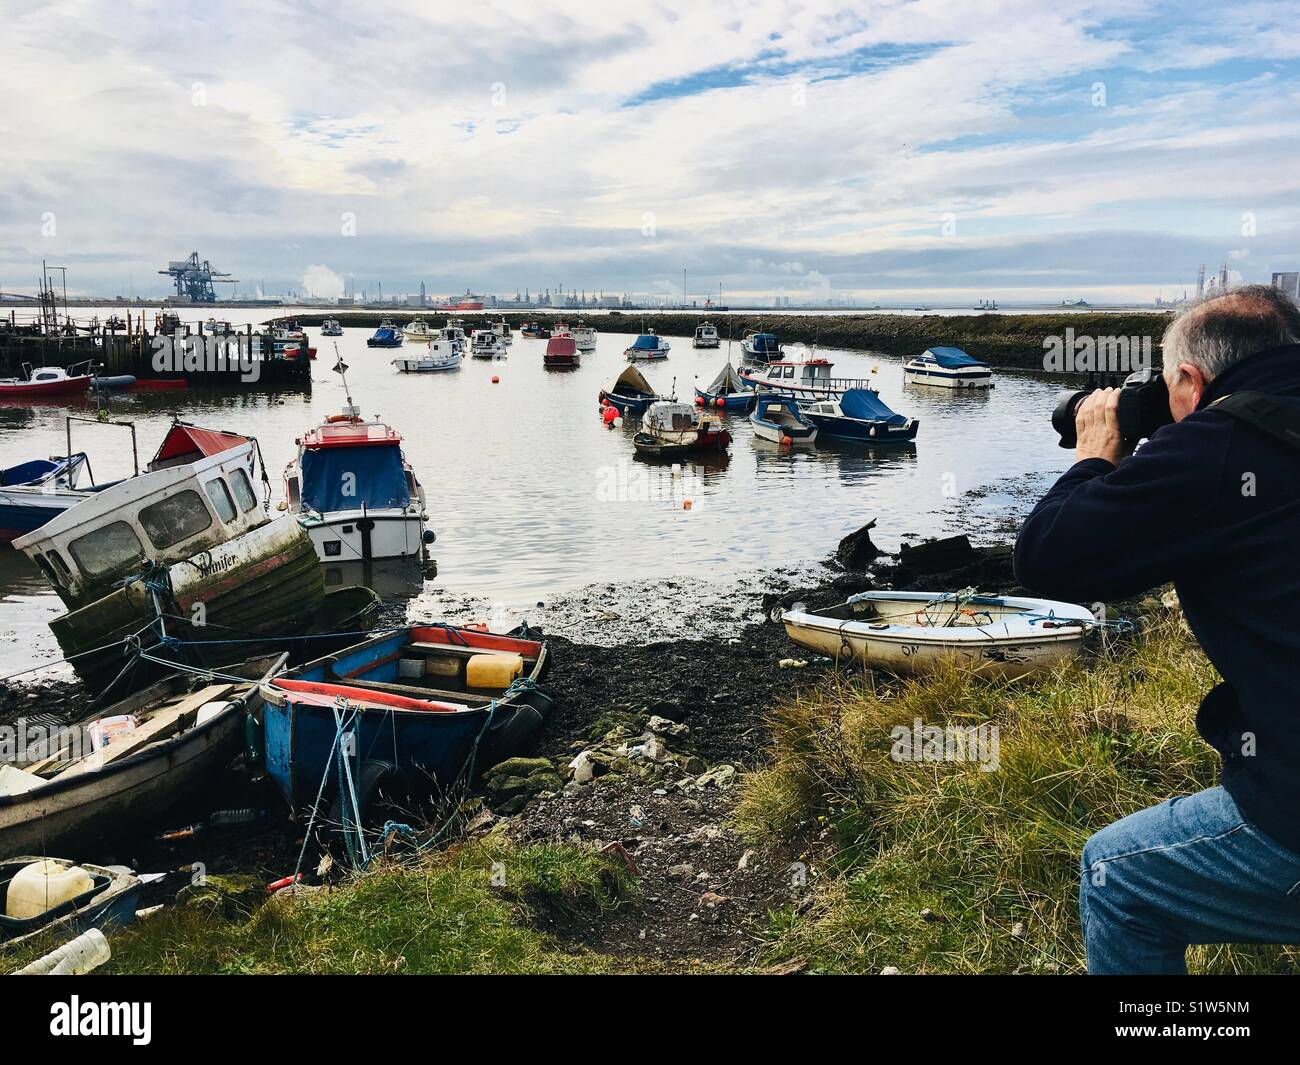 A man taking photograph's at Paddy's Hole in Redcar, Teesside. - Stock Image